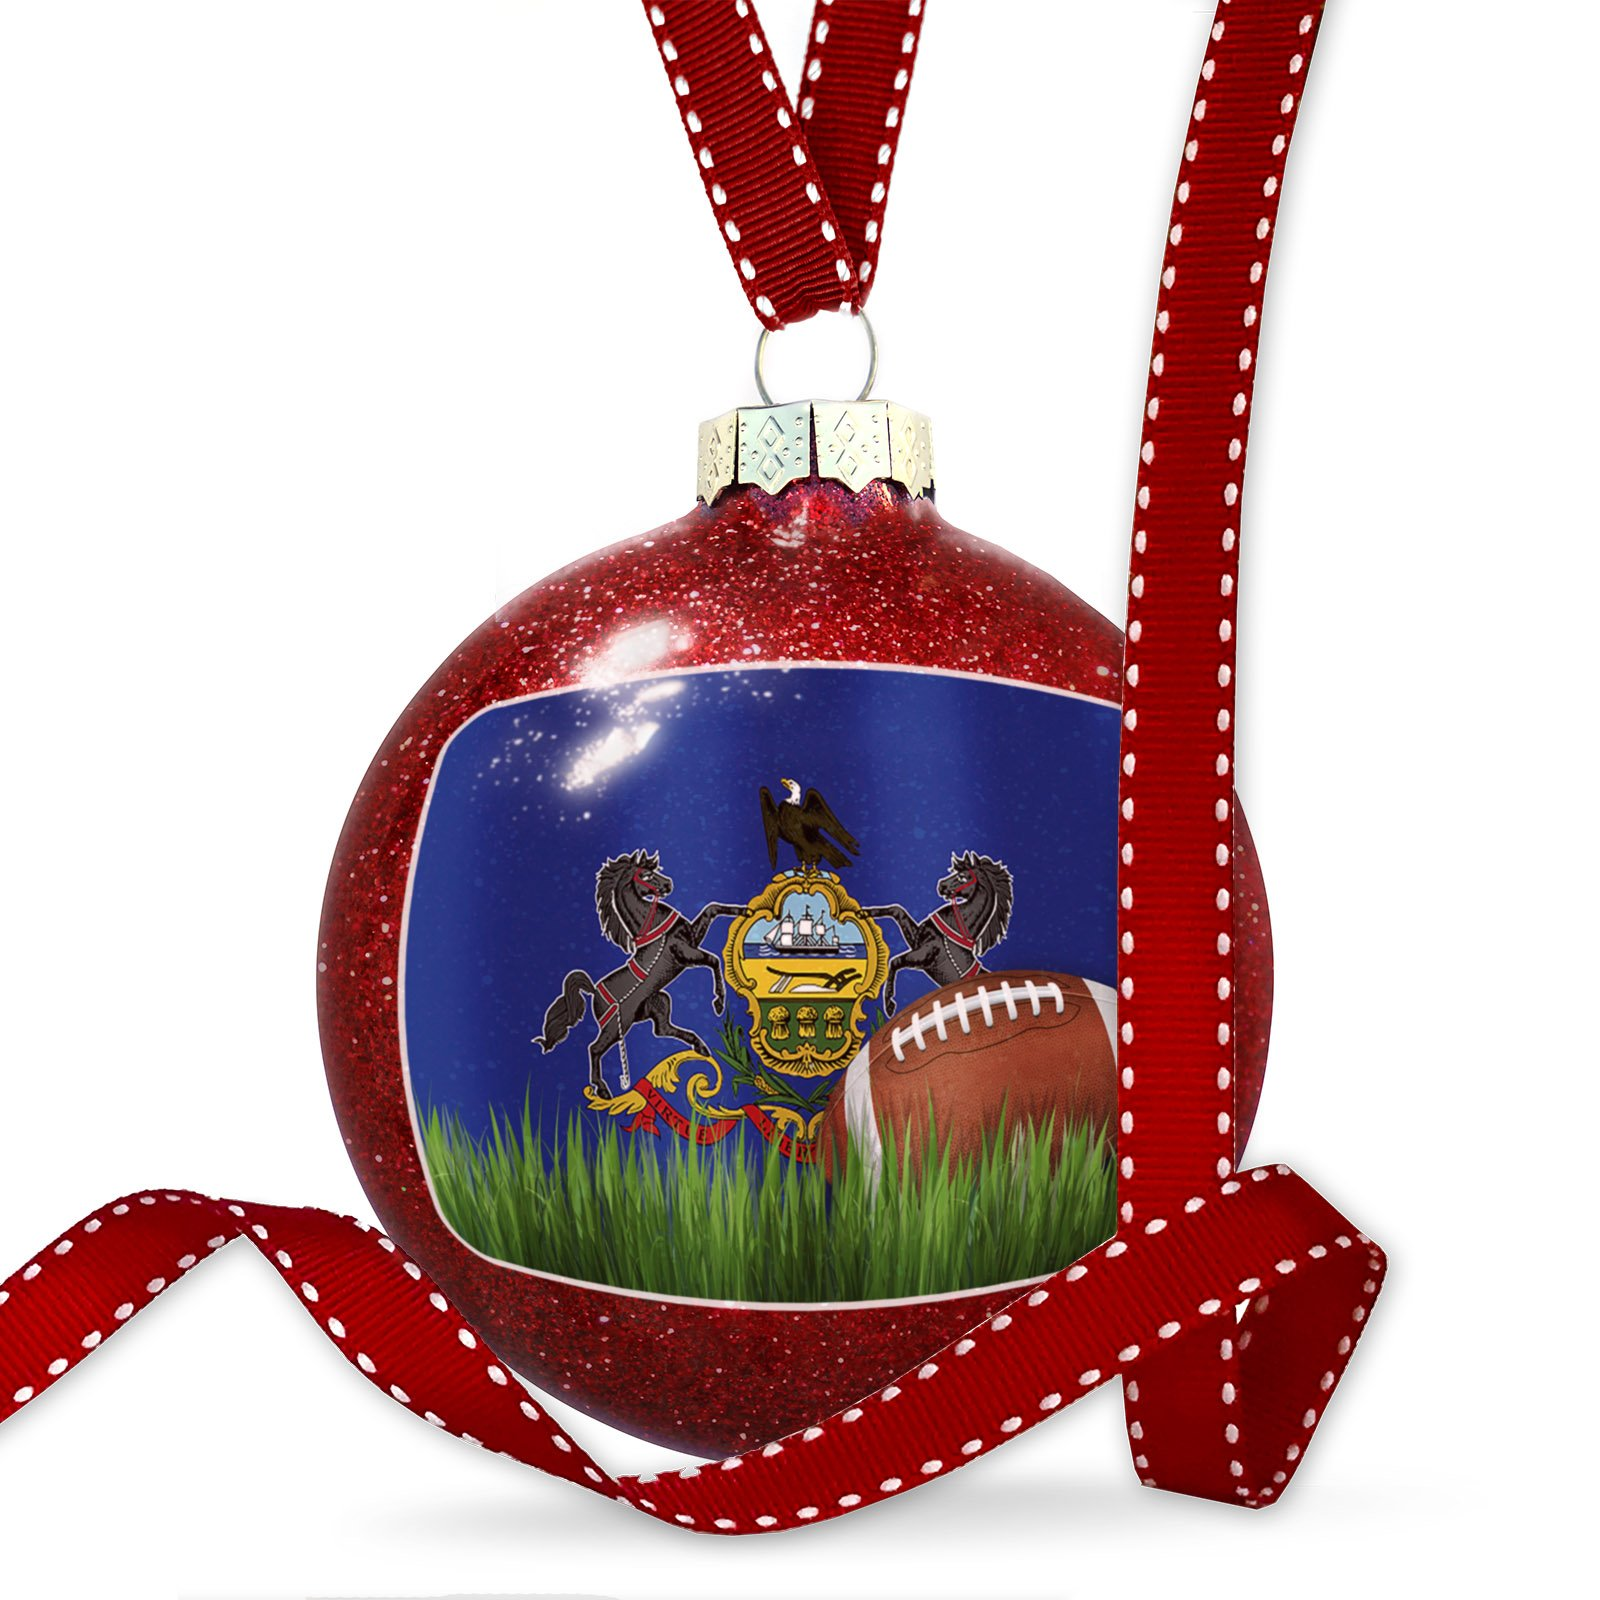 Christmas Decoration Football with Flag Pennsylvania region America (USA) Ornament